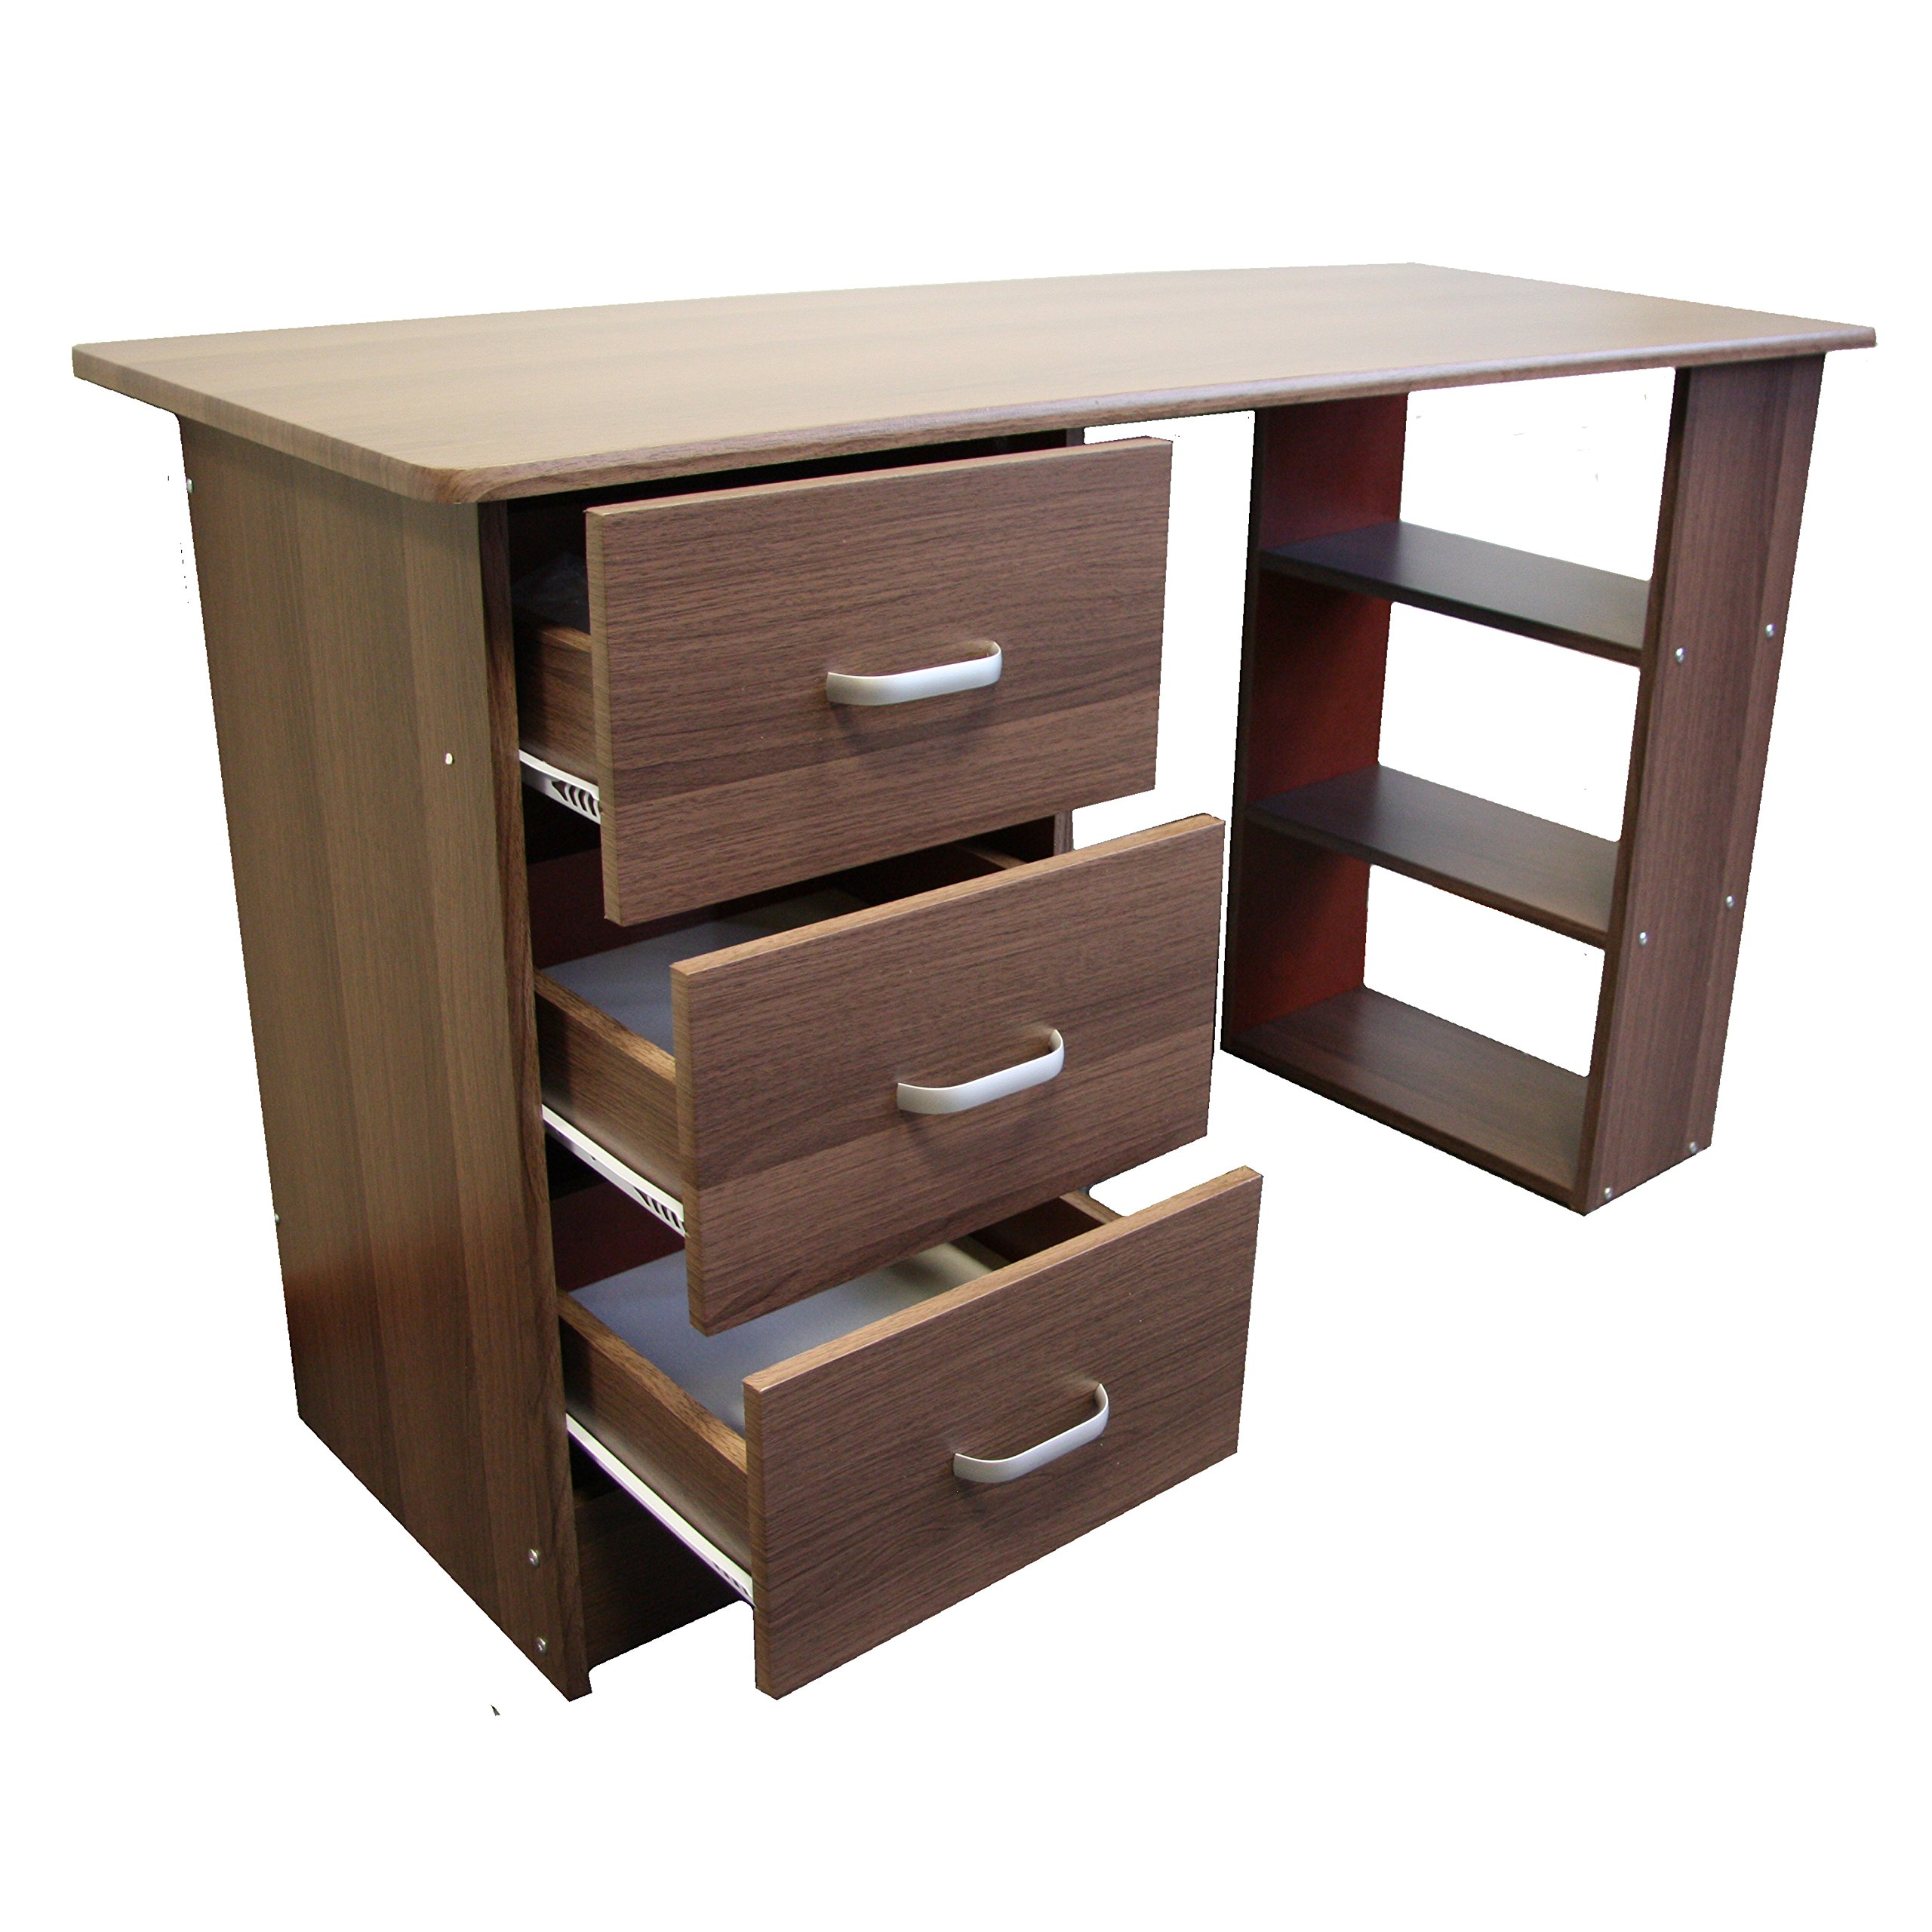 office table with drawers. Redstone Dark Walnut Computer Desk - 3 Drawers + Shelves Home Office Table Workstation With